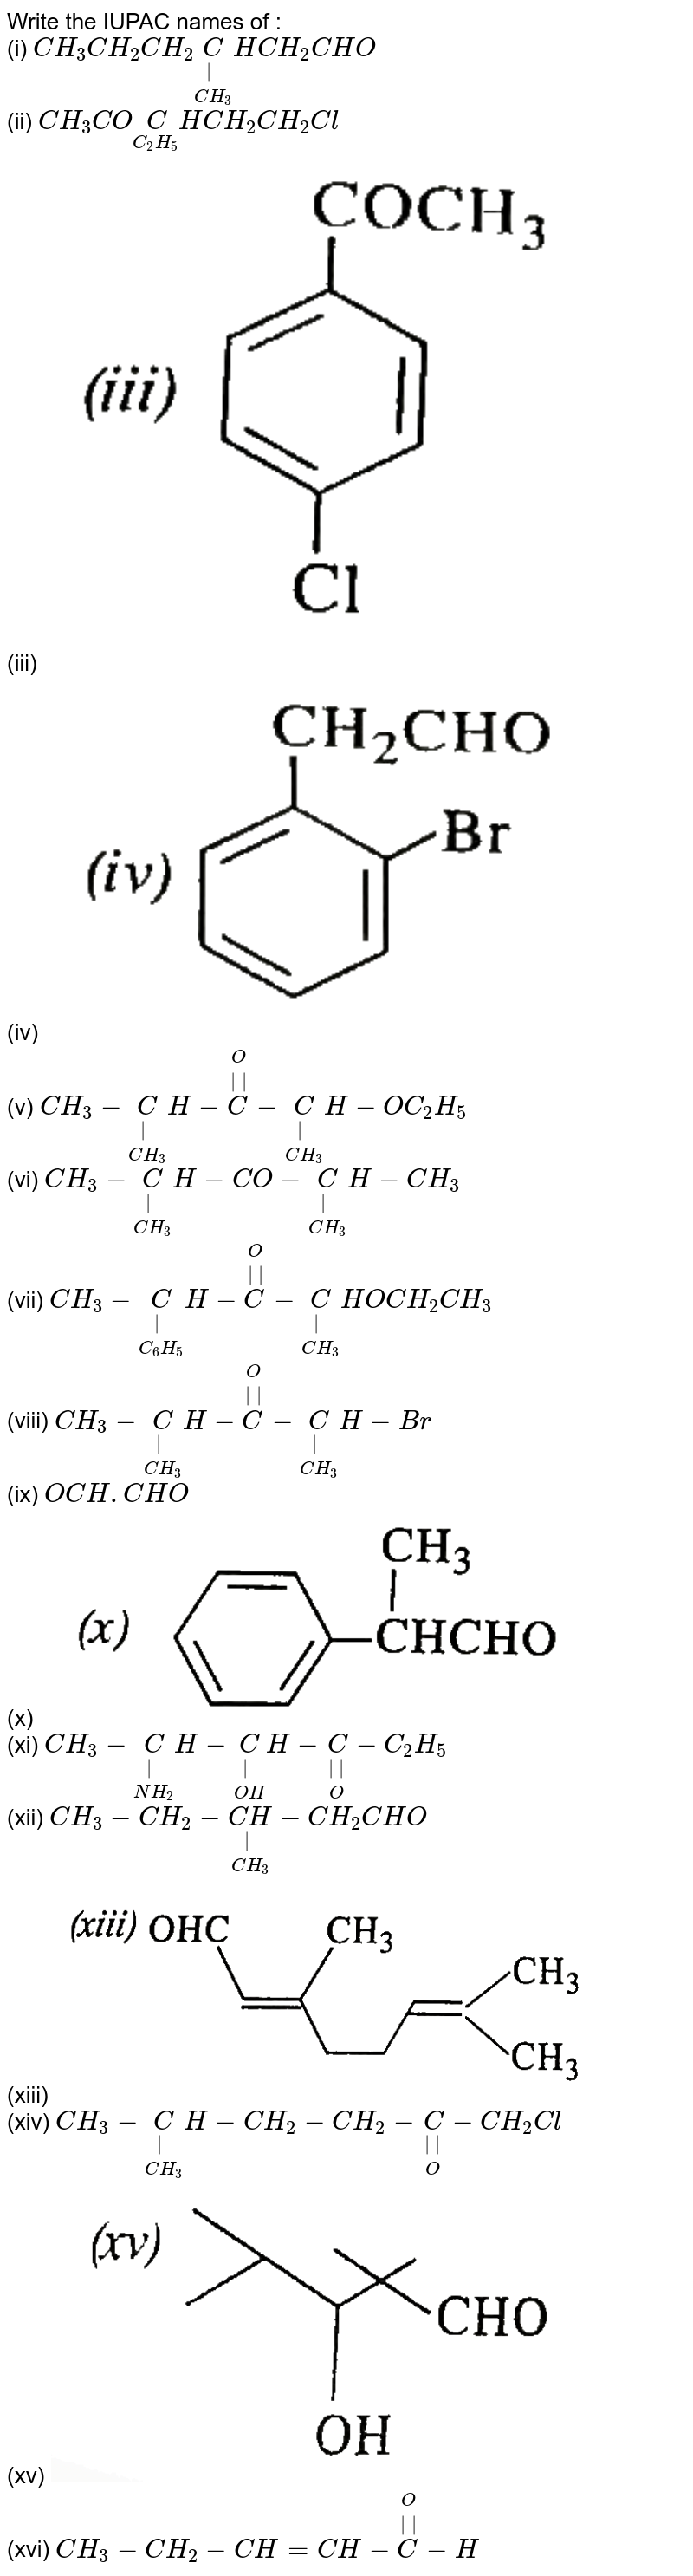 """Write the IUPAC names of : <br> (i) `CH_(3)CH_(2)CH_(2)underset(CH_(3))underset( )(C)HCH_(2)CHO` <br> (ii) `CH_(3)COunderset(C_(2)H_(5))(C)HCH_(2)CH_(2)Cl` <br> (iii) <img src=""""https://d10lpgp6xz60nq.cloudfront.net/physics_images/SKM_COMP_CHM_V02_XII_13_1_E01_066_Q01.png"""" width=""""80%""""> <br> (iv) <img src=""""https://d10lpgp6xz60nq.cloudfront.net/physics_images/SKM_COMP_CHM_V02_XII_13_1_E01_066_Q02.png"""" width=""""80%""""> <br> (v) `CH_(3)-underset(CH_(3))underset( )(C)H-overset(O)overset(  )(C)-underset(CH_(3))underset( )(C)H-OC_(2)H_(5)` <br> (vi) `CH_(3)-underset(CH_(3))underset( )(C)H-CO-underset(CH_(3))underset( )(C)H-CH_(3)` <br> (vii) `CH_(3)-underset(C_(6)H_(5))underset( )(C)H-overset(O)overset(  )(C)-underset(CH_(3))underset( )(C)HOCH_(2)CH_(3)` <br> (viii) `CH_(3)-underset(CH_(3))underset( )(C)H-overset(O)overset(  )(C)-underset(CH_(3))underset( )(C)H-Br` <br> (ix) `OCH.CHO` <br> (x) <img src=""""https://d10lpgp6xz60nq.cloudfront.net/physics_images/SKM_COMP_CHM_V02_XII_13_1_E01_066_Q03.png"""" width=""""80%""""> <br> (xi) `CH_(3)-underset(NH_(2))underset( )(C)H-underset(OH)underset( )(C)H-underset(O)underset(  )(C)-C_(2)H_(5)` <br> (xii) `CH_(3)-CH_(2)-underset(CH_(3))underset( )(CH)-CH_(2)CHO` <br> (xiii) <img src=""""https://d10lpgp6xz60nq.cloudfront.net/physics_images/SKM_COMP_CHM_V02_XII_13_1_E01_066_Q04.png"""" width=""""80%""""> <br> (xiv) `CH_(3)-underset(CH_(3))underset( )(C)H-CH_(2)-CH_(2)-underset(O)underset(  )(C)-CH_(2)Cl` <br> (xv) <img src=""""https://d10lpgp6xz60nq.cloudfront.net/physics_images/SKM_COMP_CHM_V02_XII_13_1_E01_066_Q05.png"""" width=""""80%""""> <br> (xvi) `CH_(3)-CH_(2)-CH=CH-overset(O)overset(  )(C)-H`"""